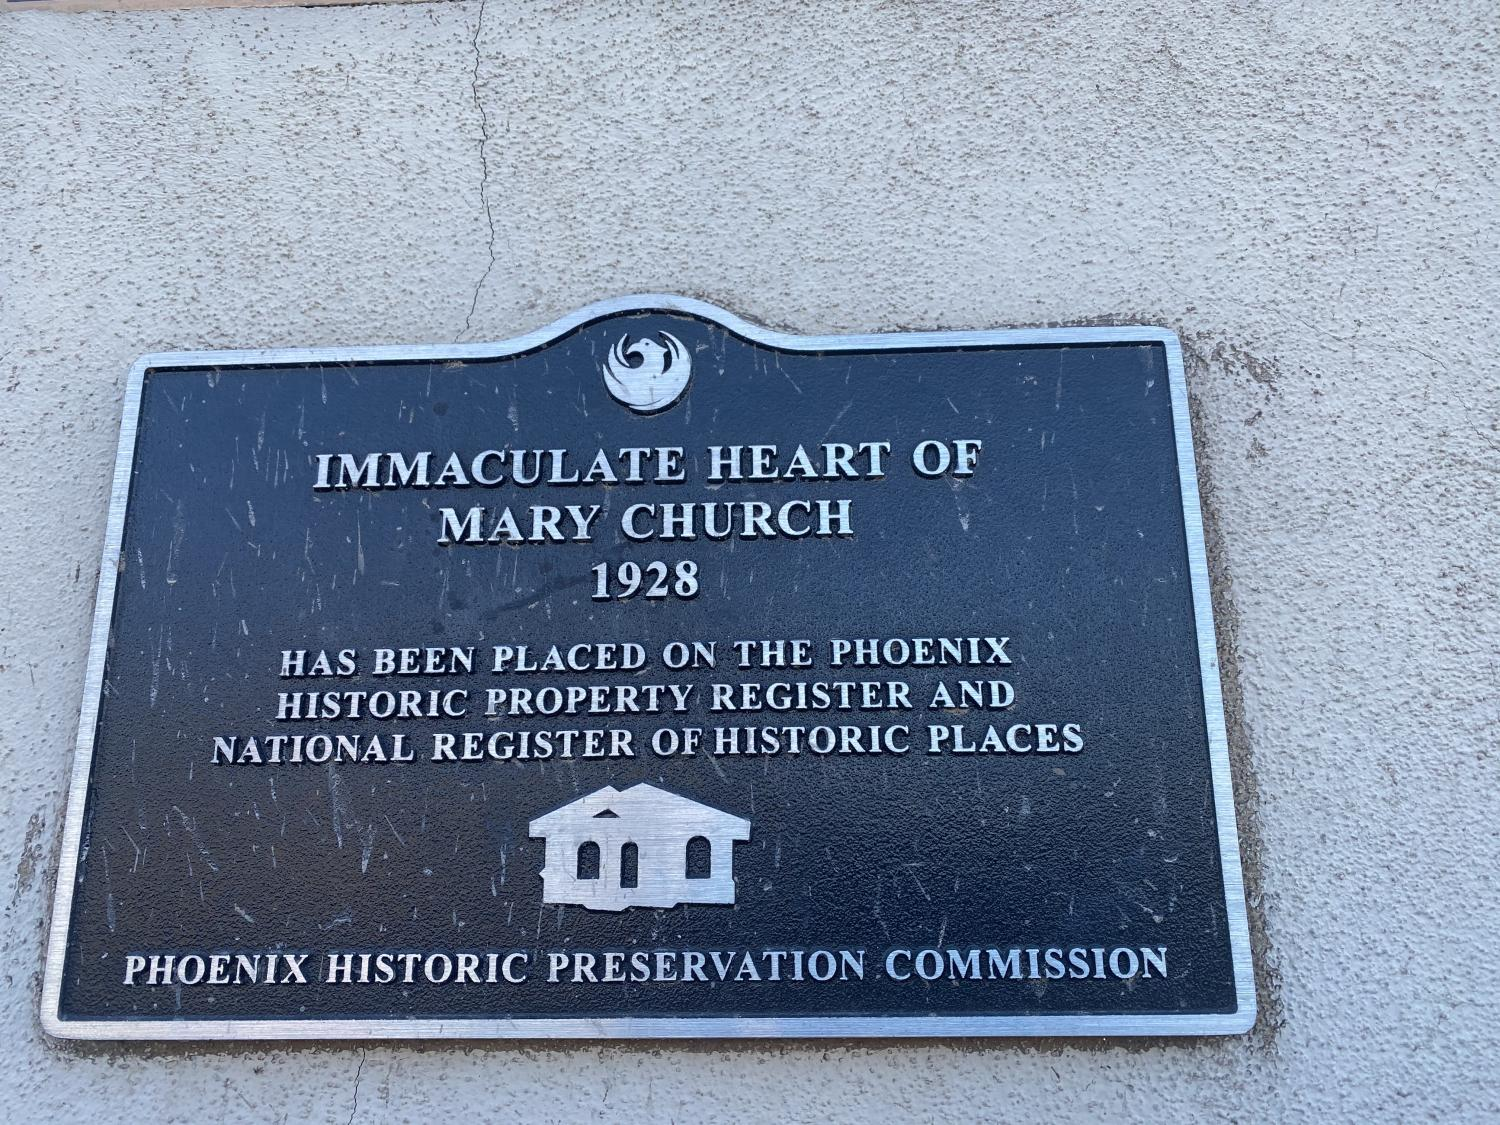 Immaculate Heart dedication